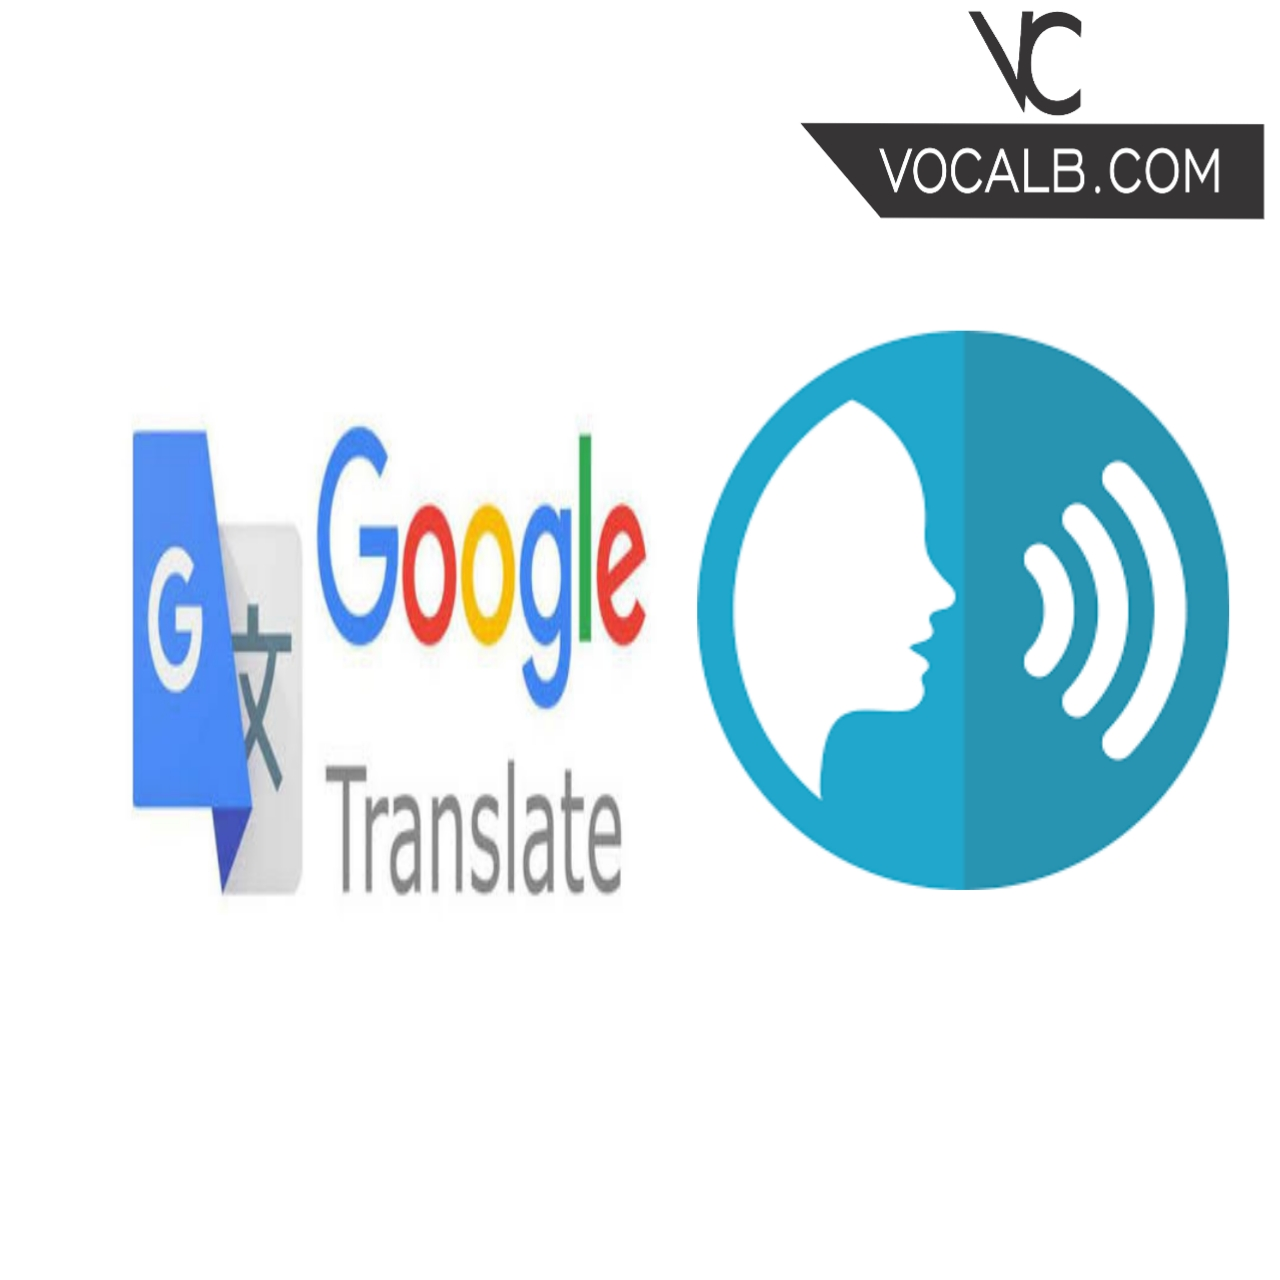 Google Translate could transcribe audio soon